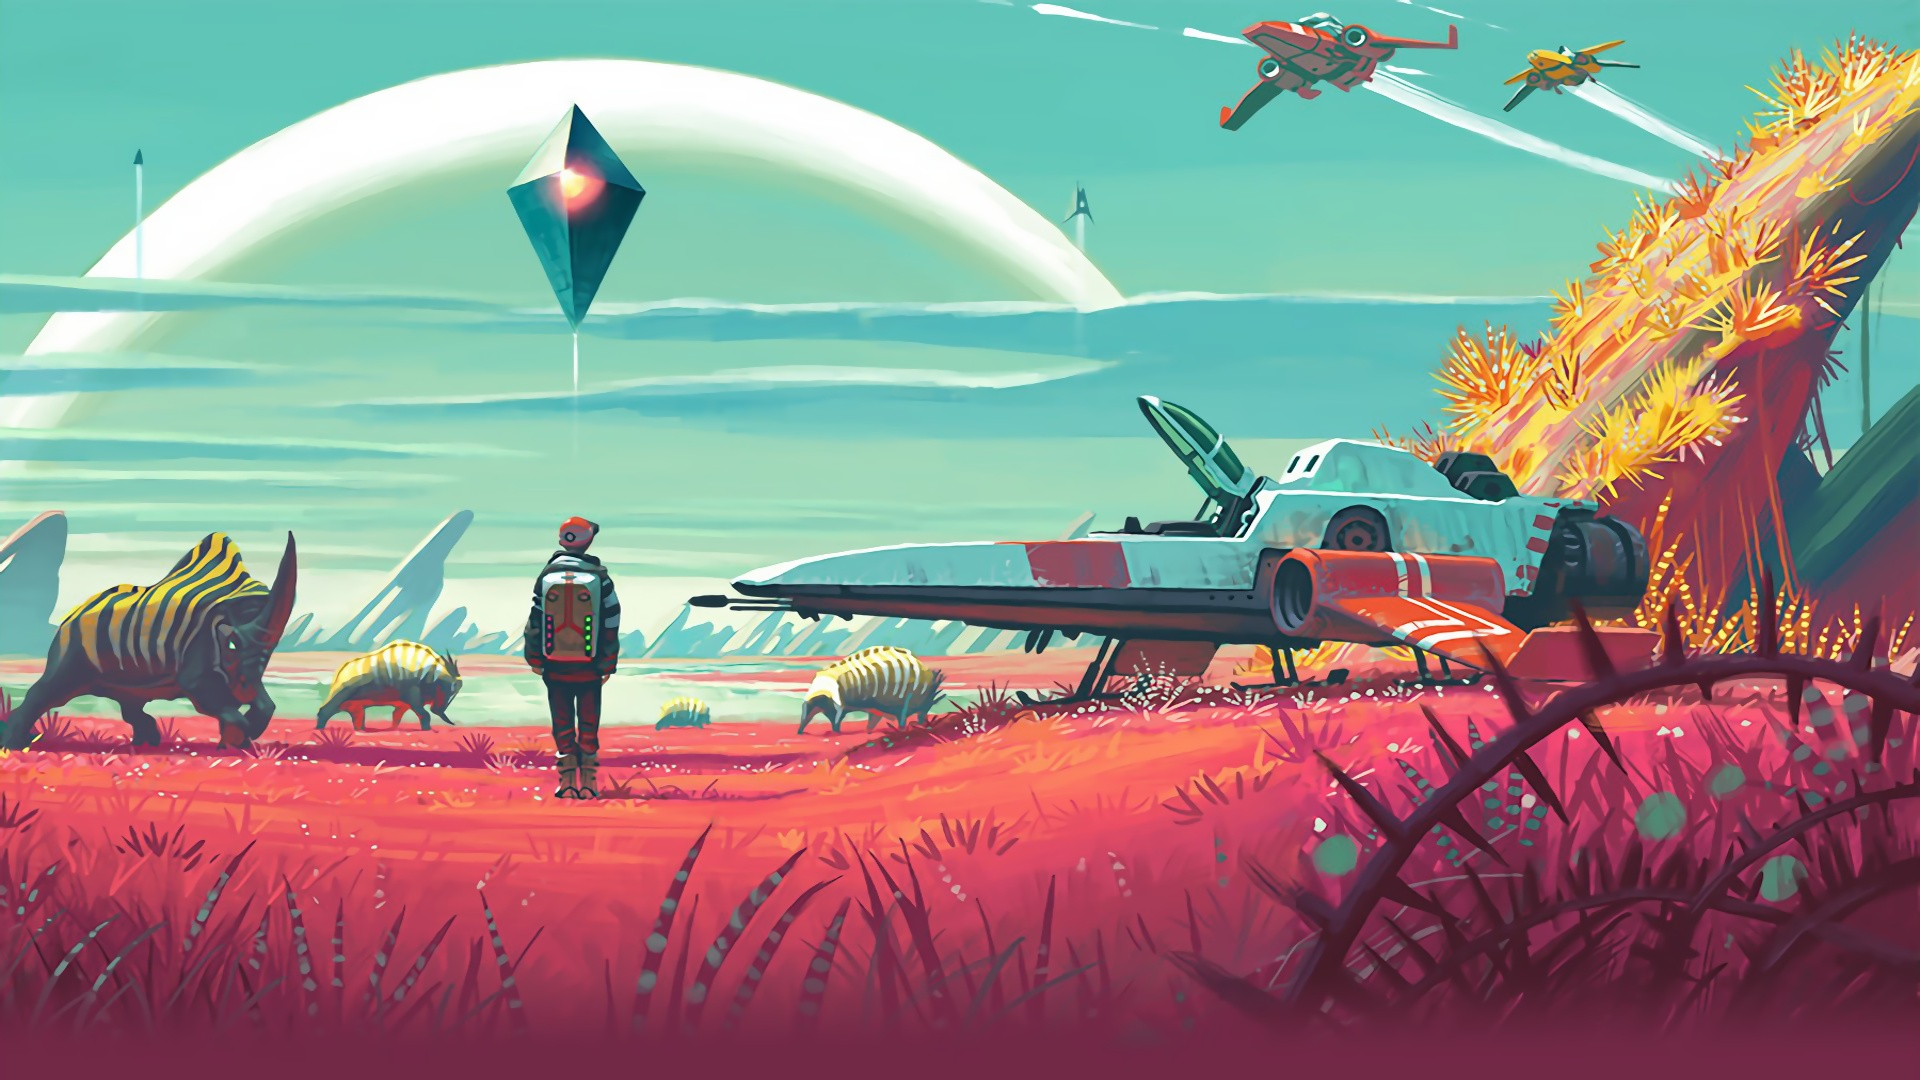 No Man's Sky Xbox One release date leaked as June